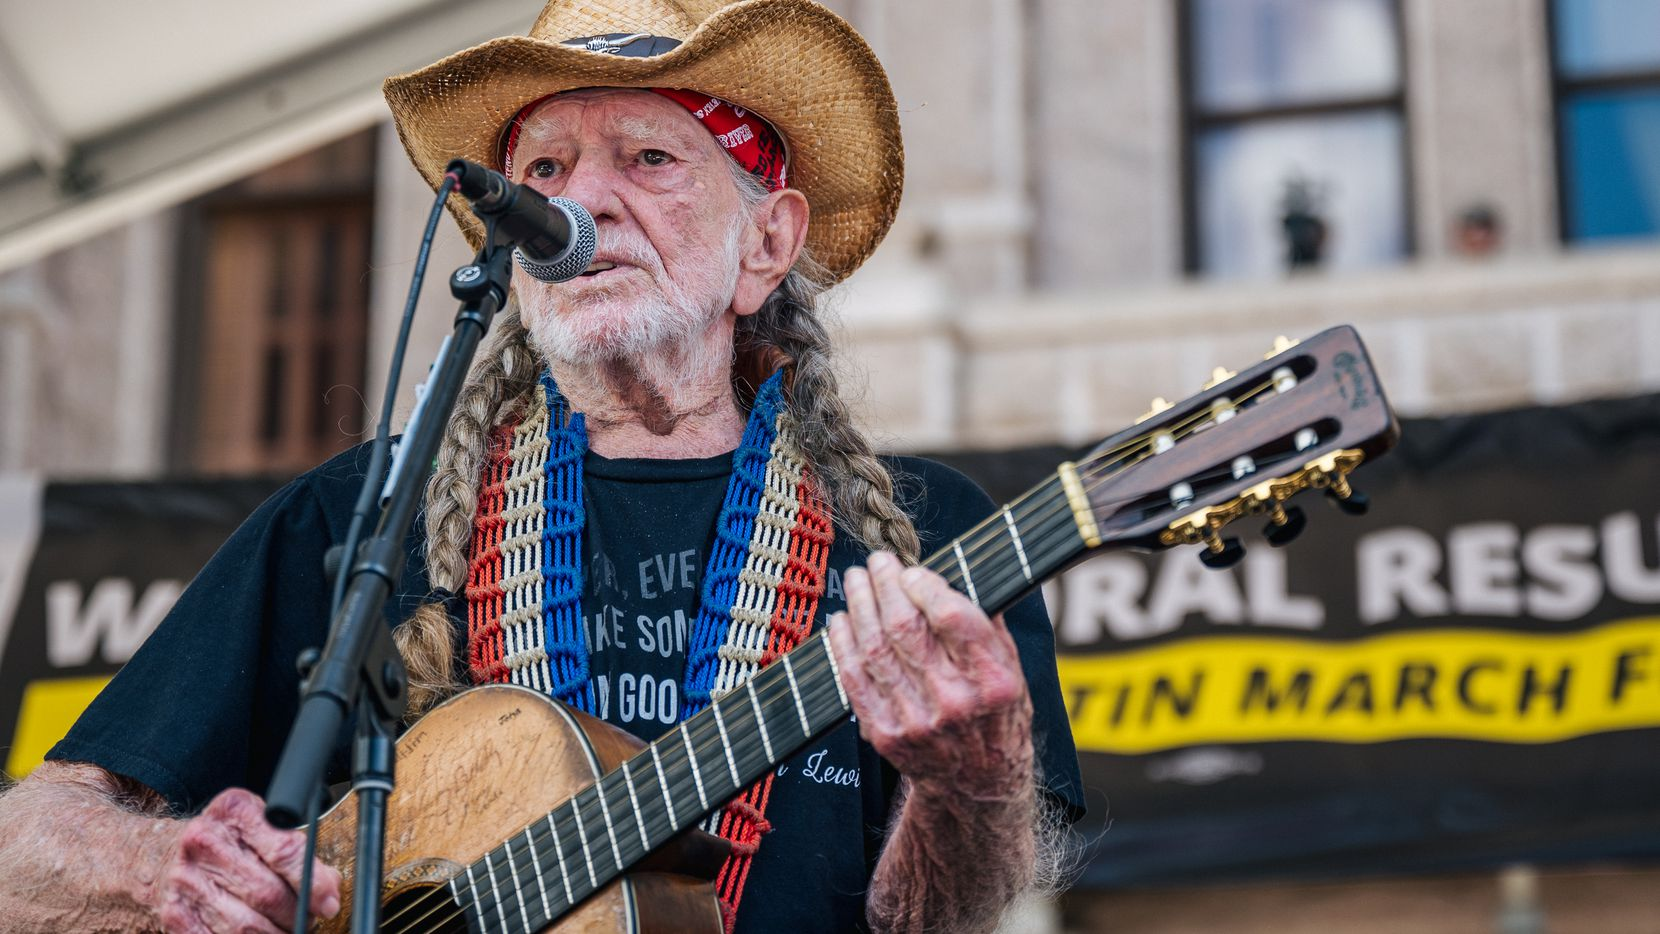 AUSTIN, TEXAS - JULY 31: American musician Willie Nelson performs during the Georgetown to Austin March for Democracy rally on July 31, 2021 in Austin, Texas. Texas activists and demonstrators rallied at the Texas state Capitol after completing a 27-mile long march, from Georgetown to Austin, demanding federal action on voting rights legislation. (Photo by Brandon Bell/Getty Images)